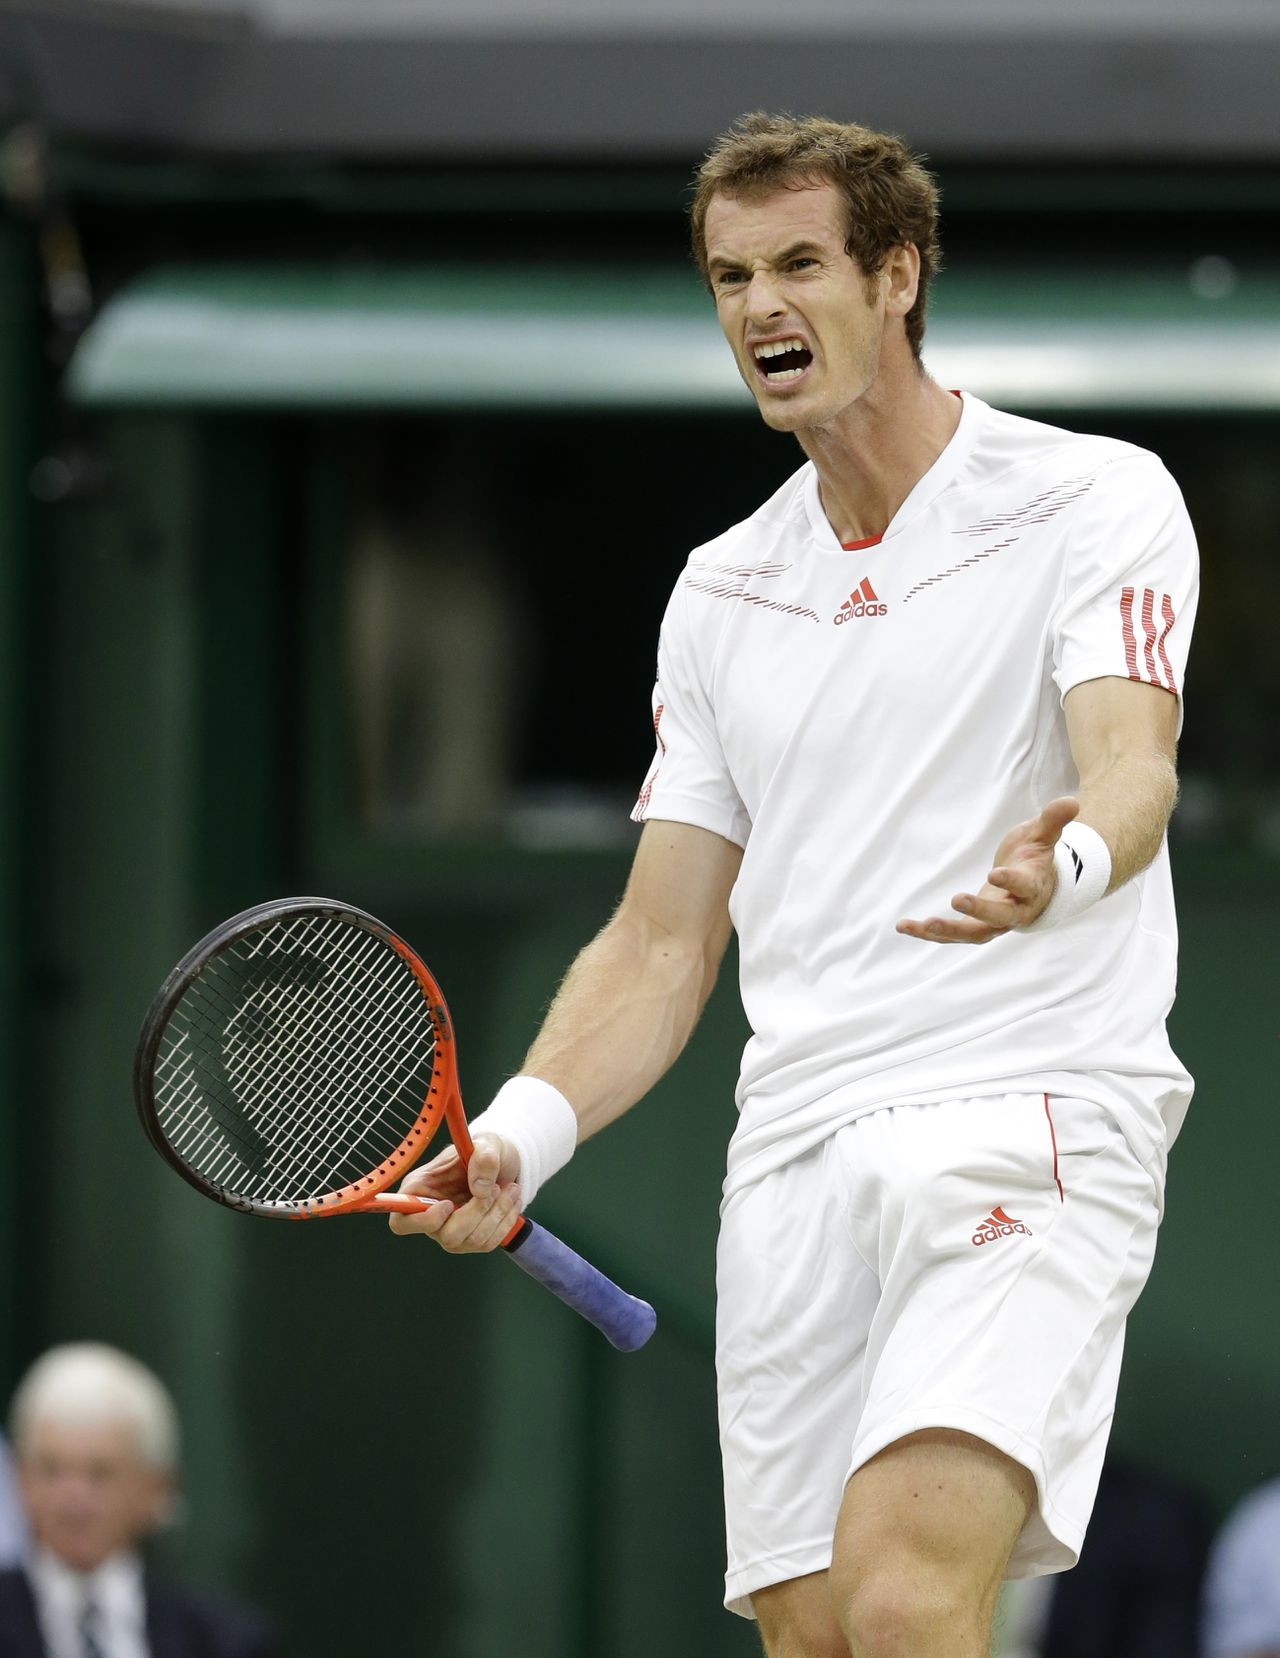 Andy Murray of Britain reacts during the men's final match against Roger Federer of Switzerland at the All England Lawn Tennis Championships at Wimbledon, England, Sunday, July 8, 2012. (AP Photo/Kirsty Wigglesworth)